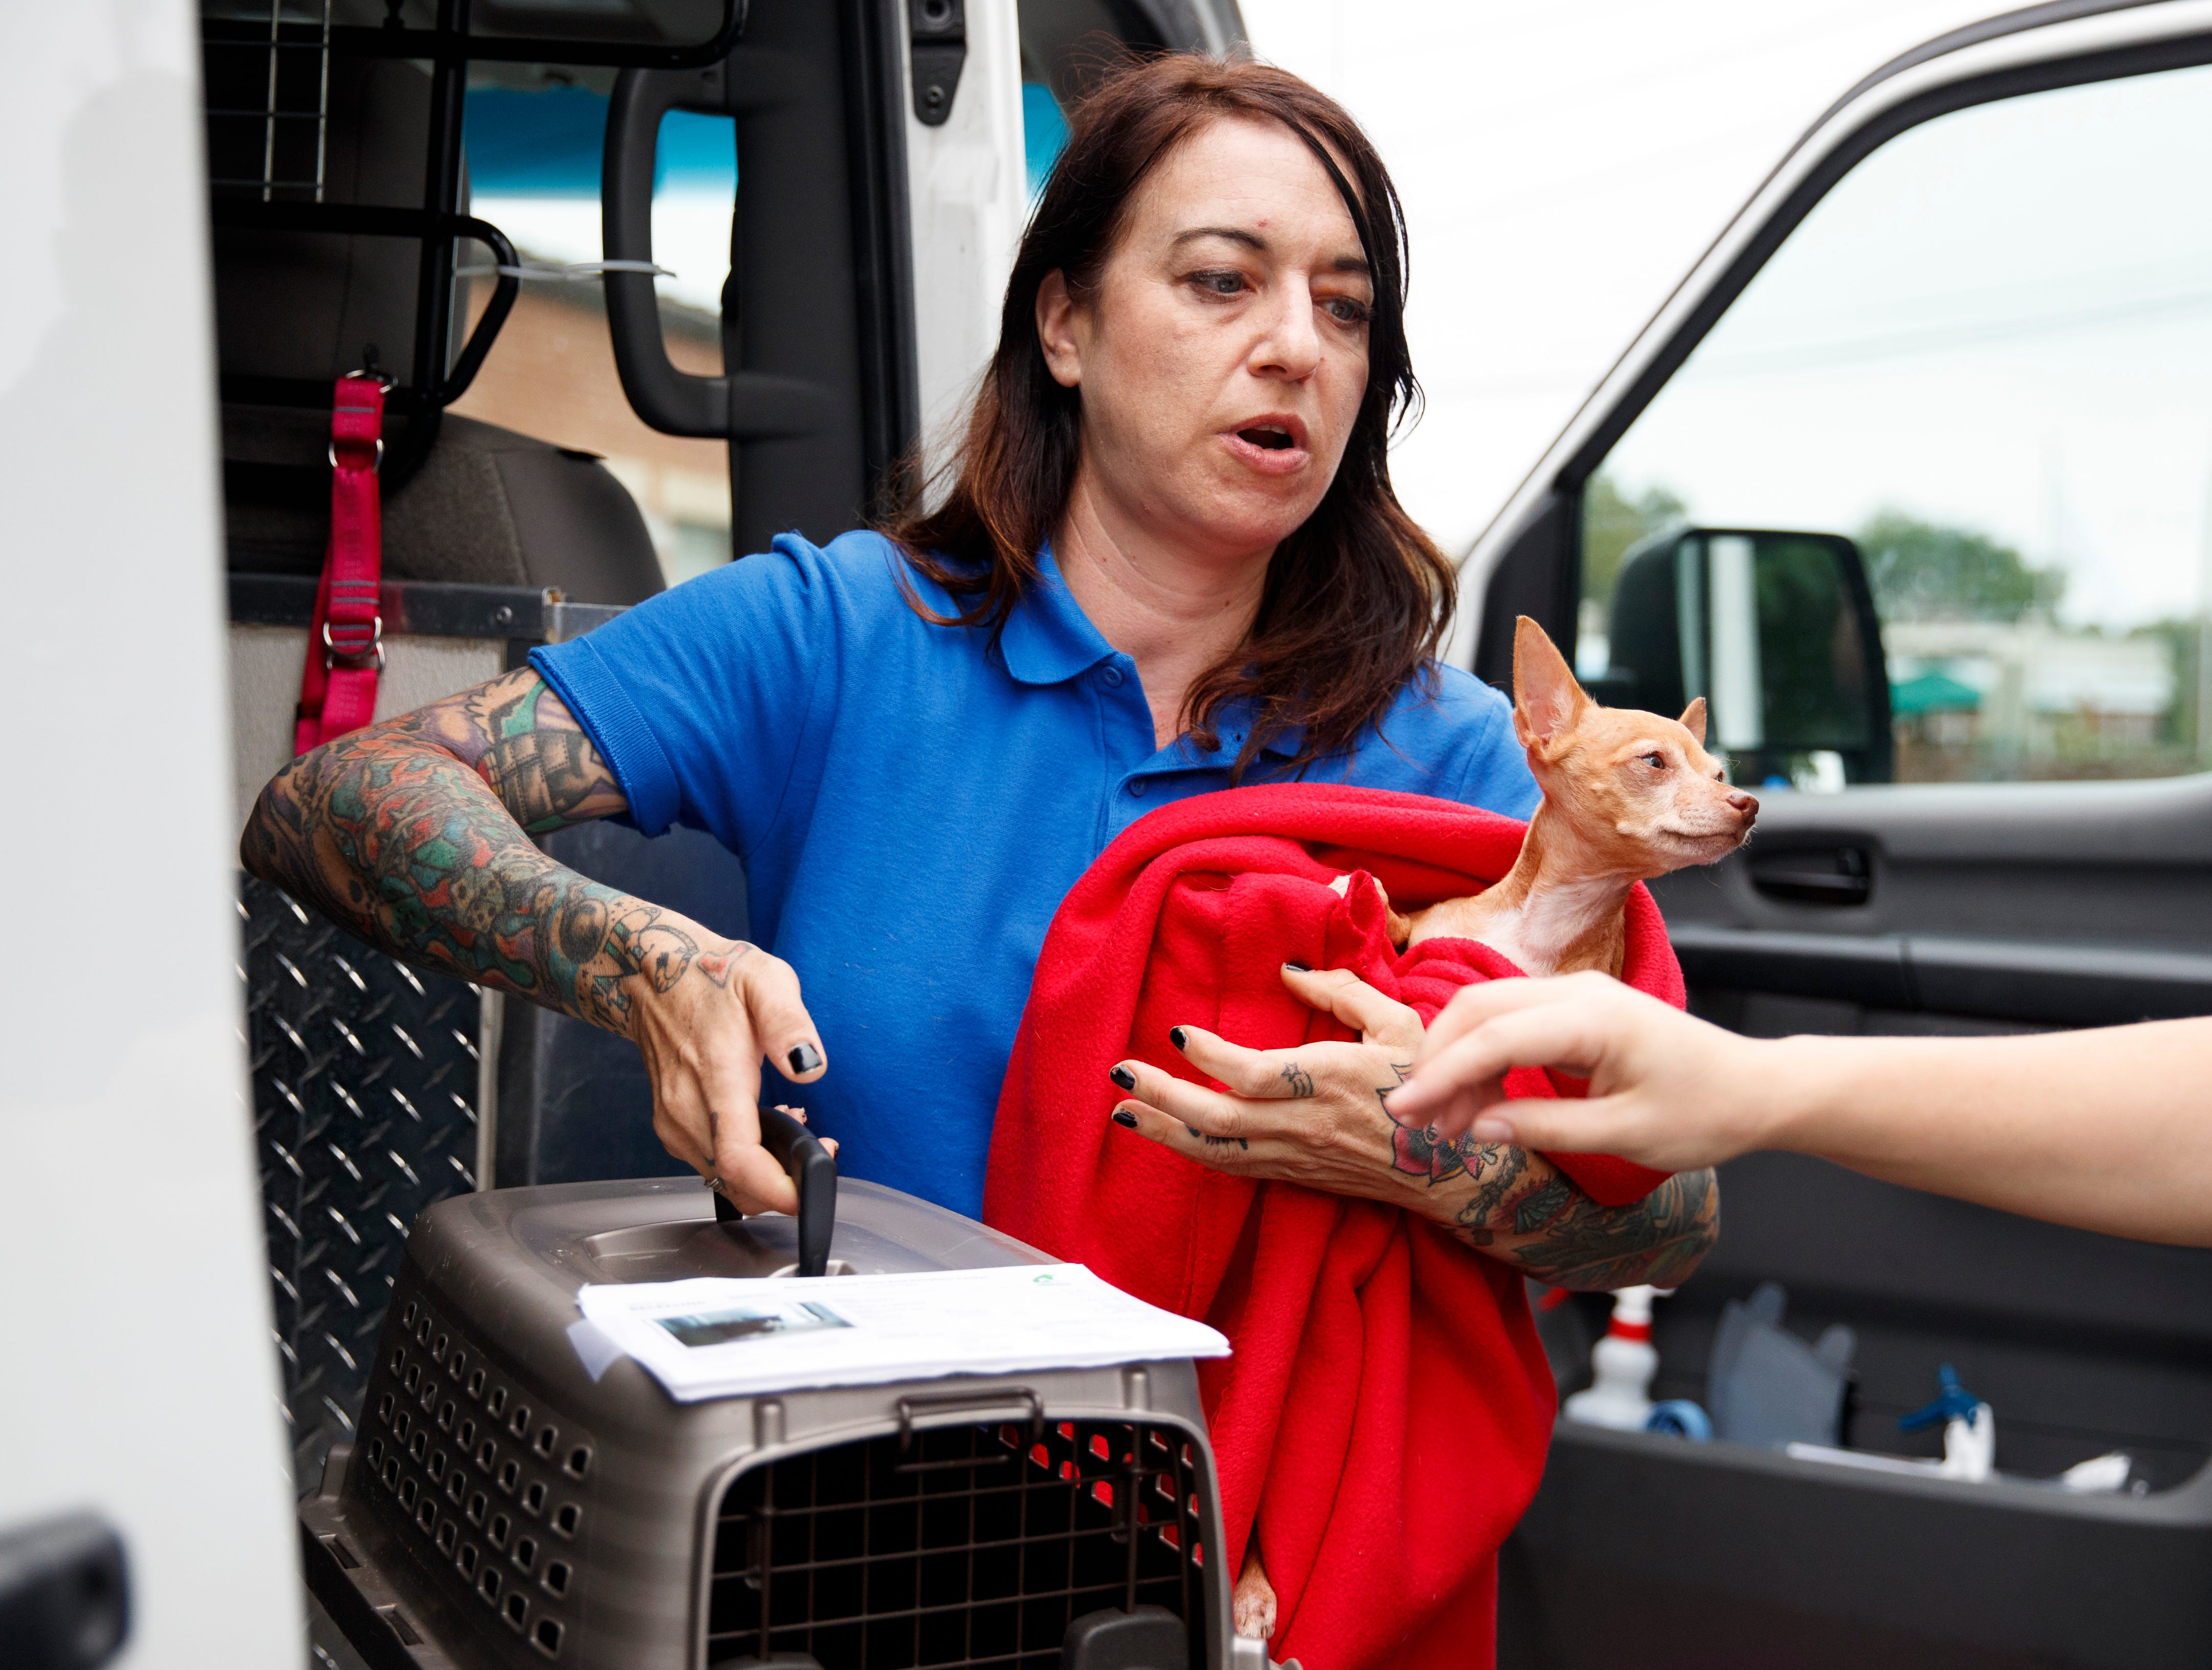 Laura Gretch, Humane Rescue Alliance transport manager, holds Frances, an 8 year-old Chihuahua mix as she help unload 26 cats and dogs arriving at Humane Rescue Alliance in Washington, Tuesday, Sept. 11, 2018, from Norfolk Animal Care and Control of Norfolk, Va., in advance of Hurricane Florence. People aren't the only ones evacuating to get out of the path of Hurricane Florence. The dogs and cats will all be available for adoption.